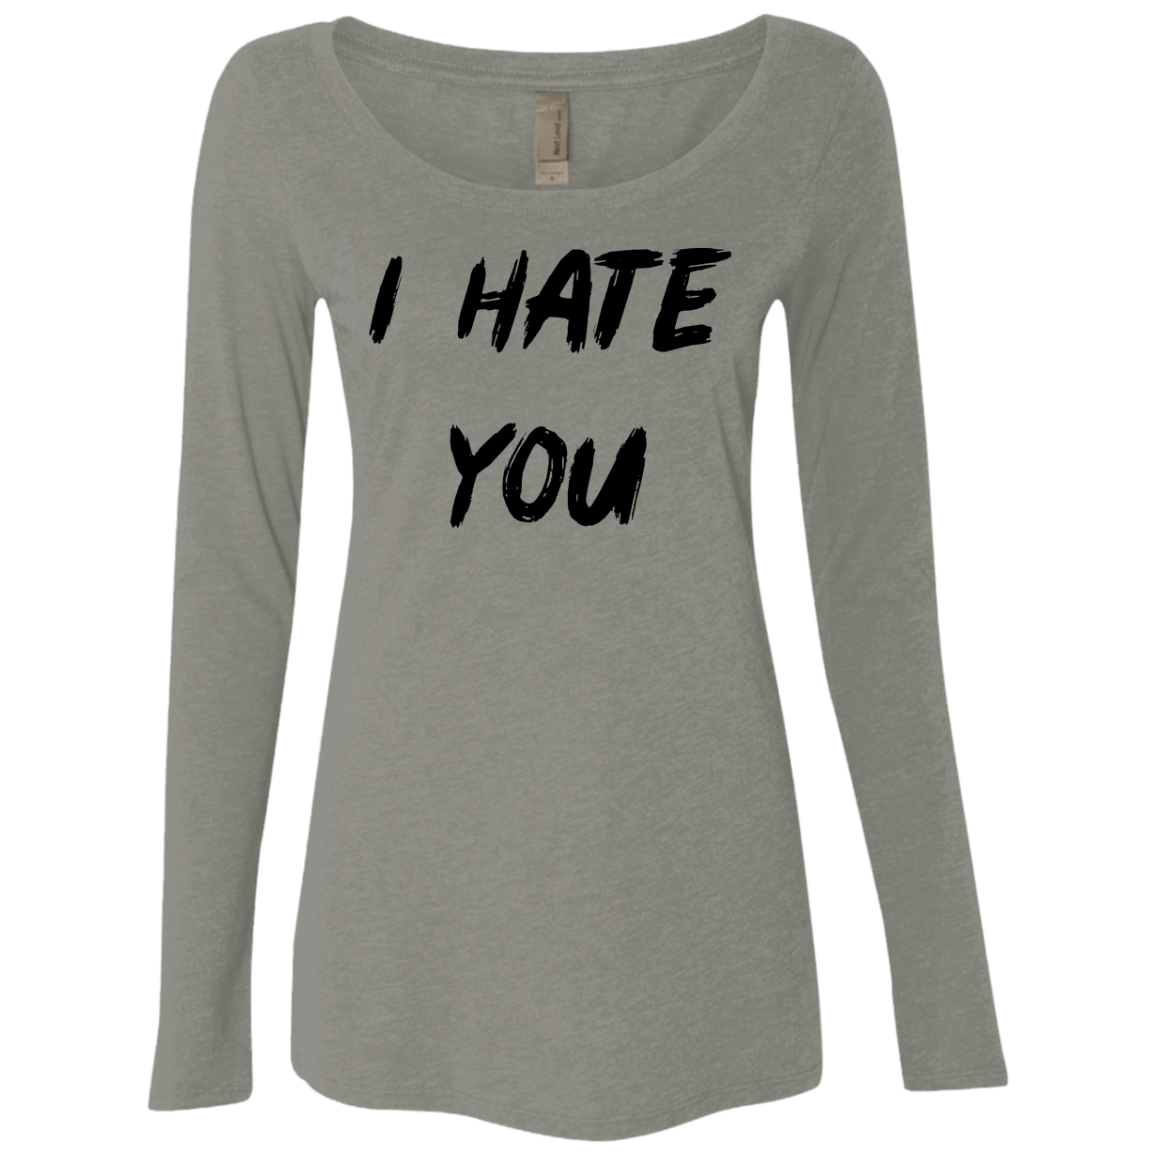 I Hate You Women's Long Sleeve Tee - Trendy Tees